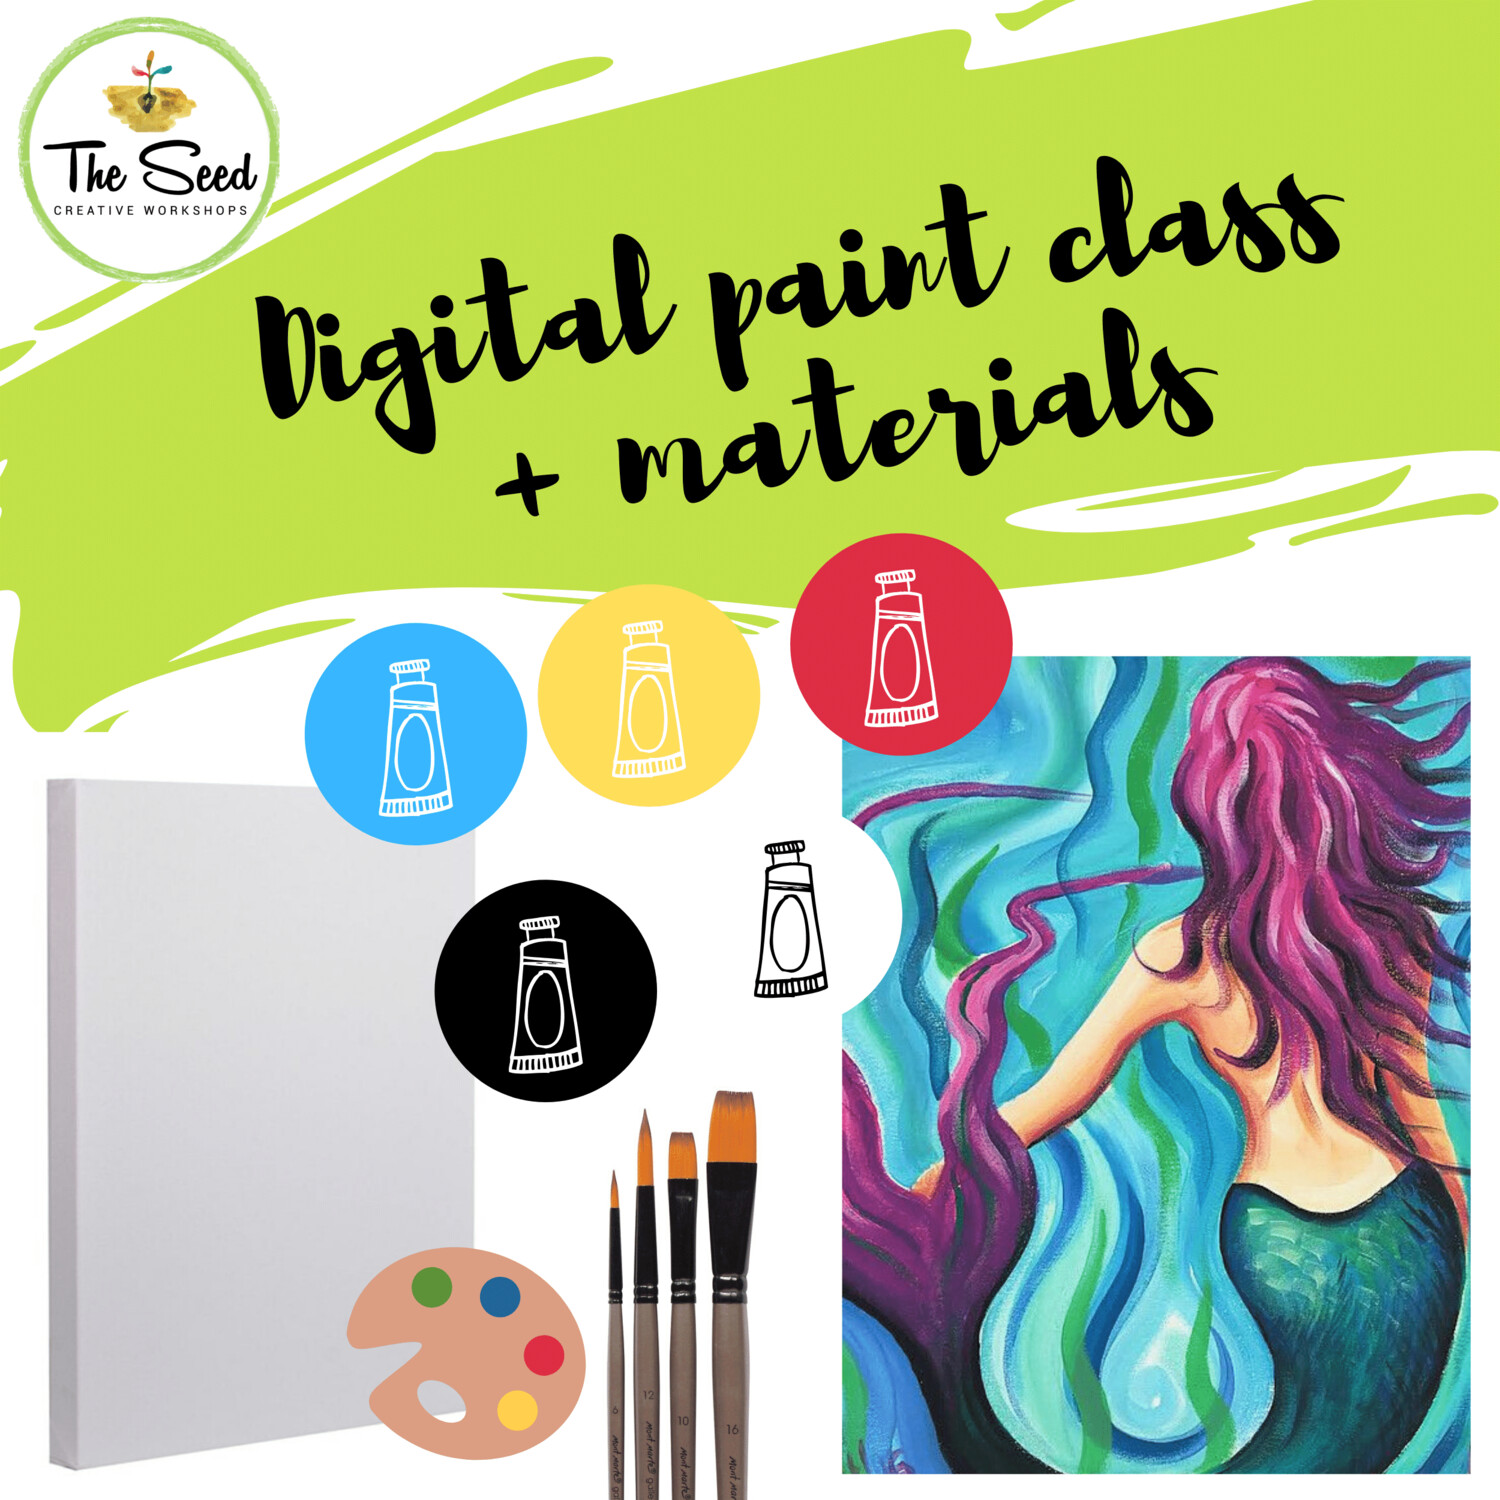 Mermaid Digital painting class - Materials + video + written instructions!